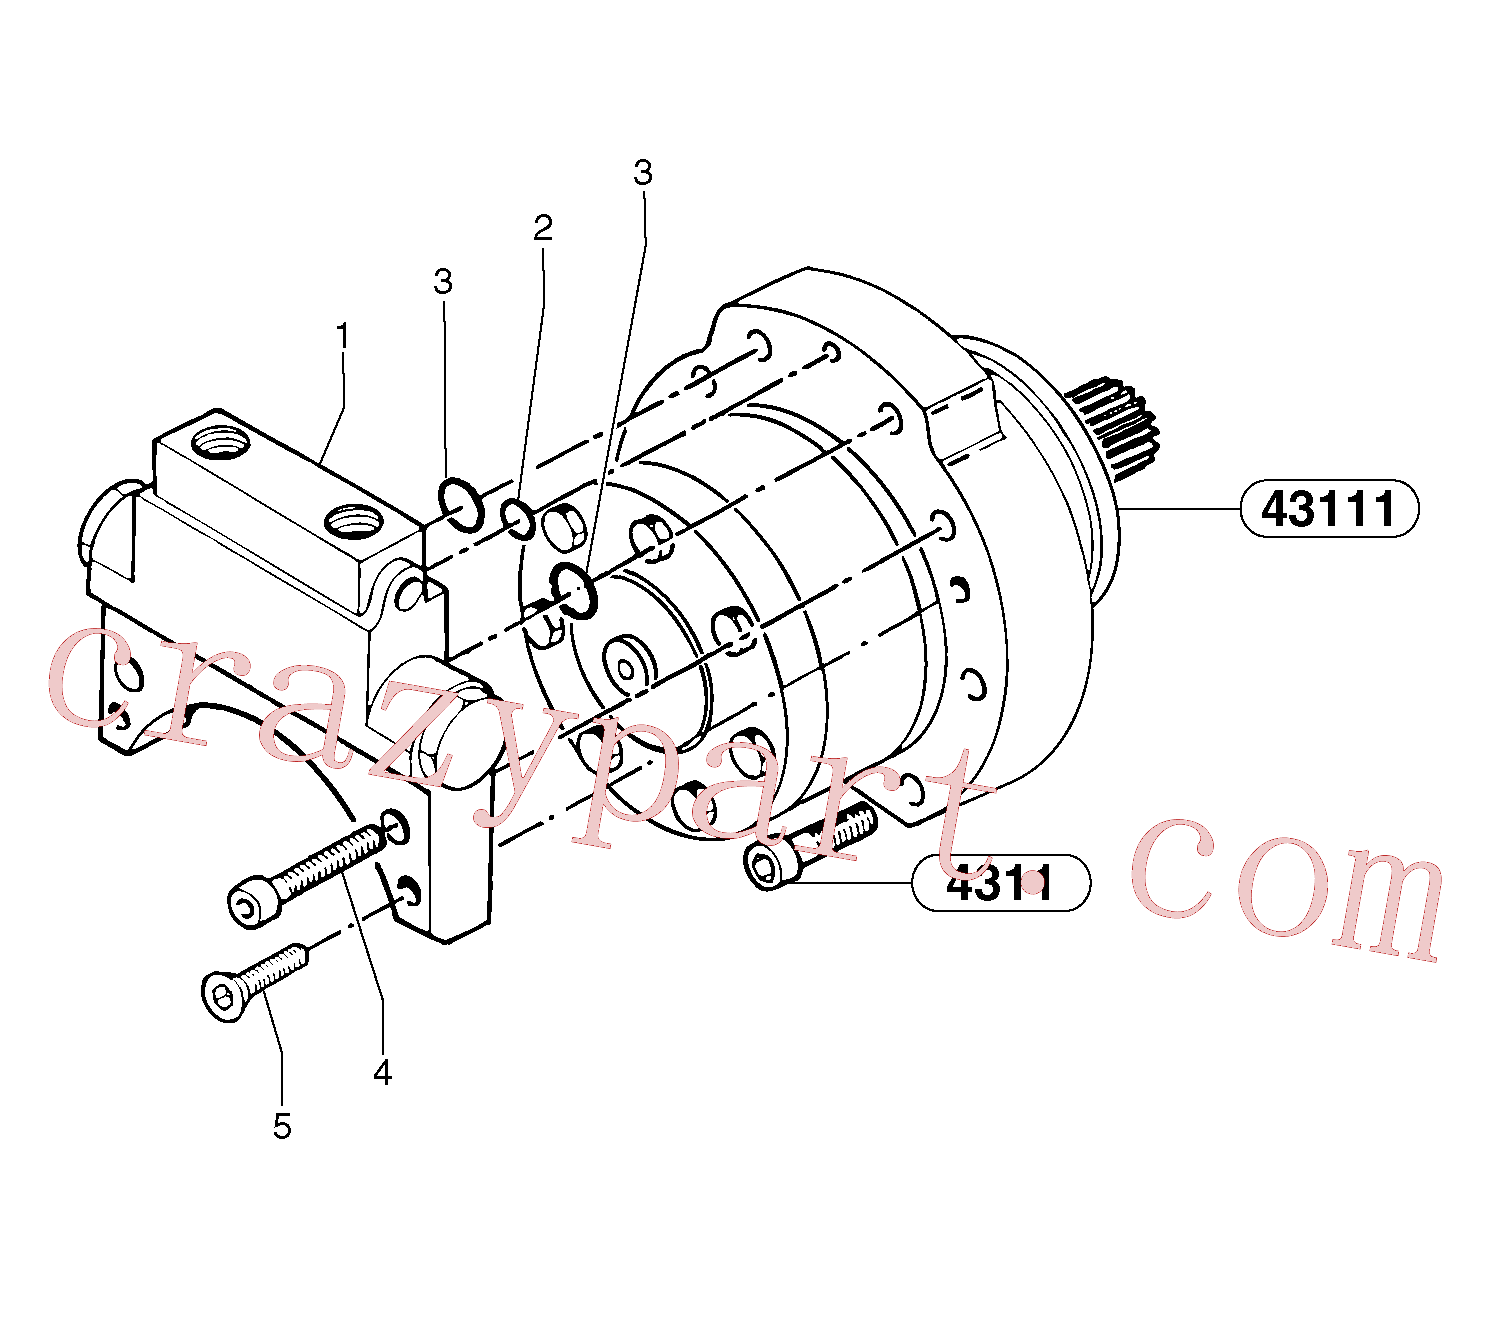 PJ7415939 for Volvo Balancing valve ( travelling )(43113X1 assembly)